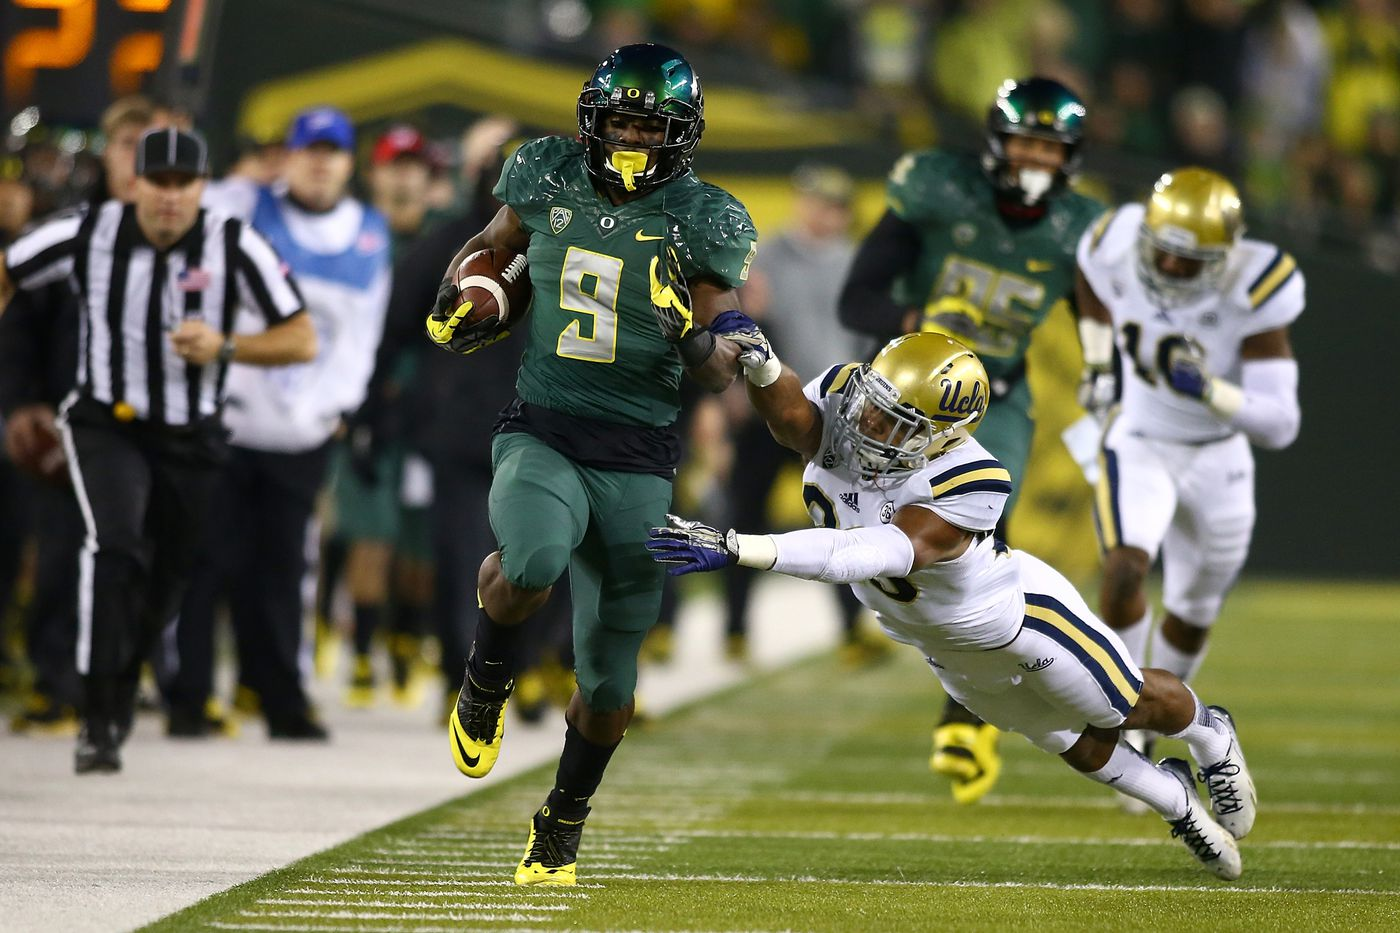 2014 Pac-12 Championship Odds: Bovada favors the Ducks and Bruins to